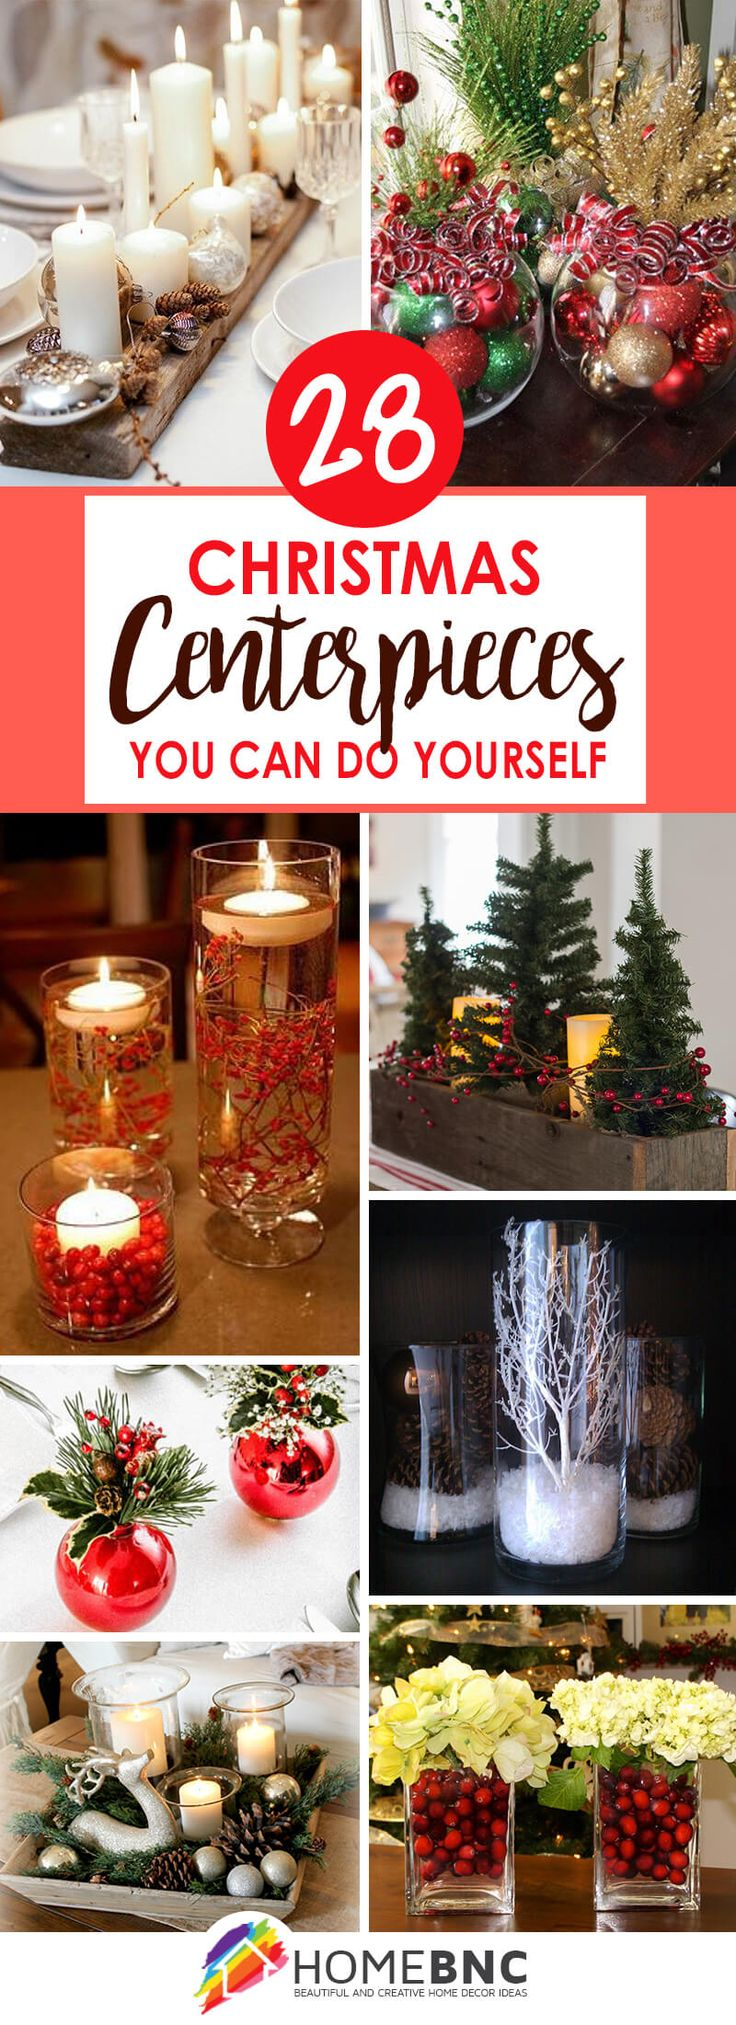 How to make christmas centerpieces with ice - 28 Fabulous Diy Christmas Centerpieces That Anyone Can Make